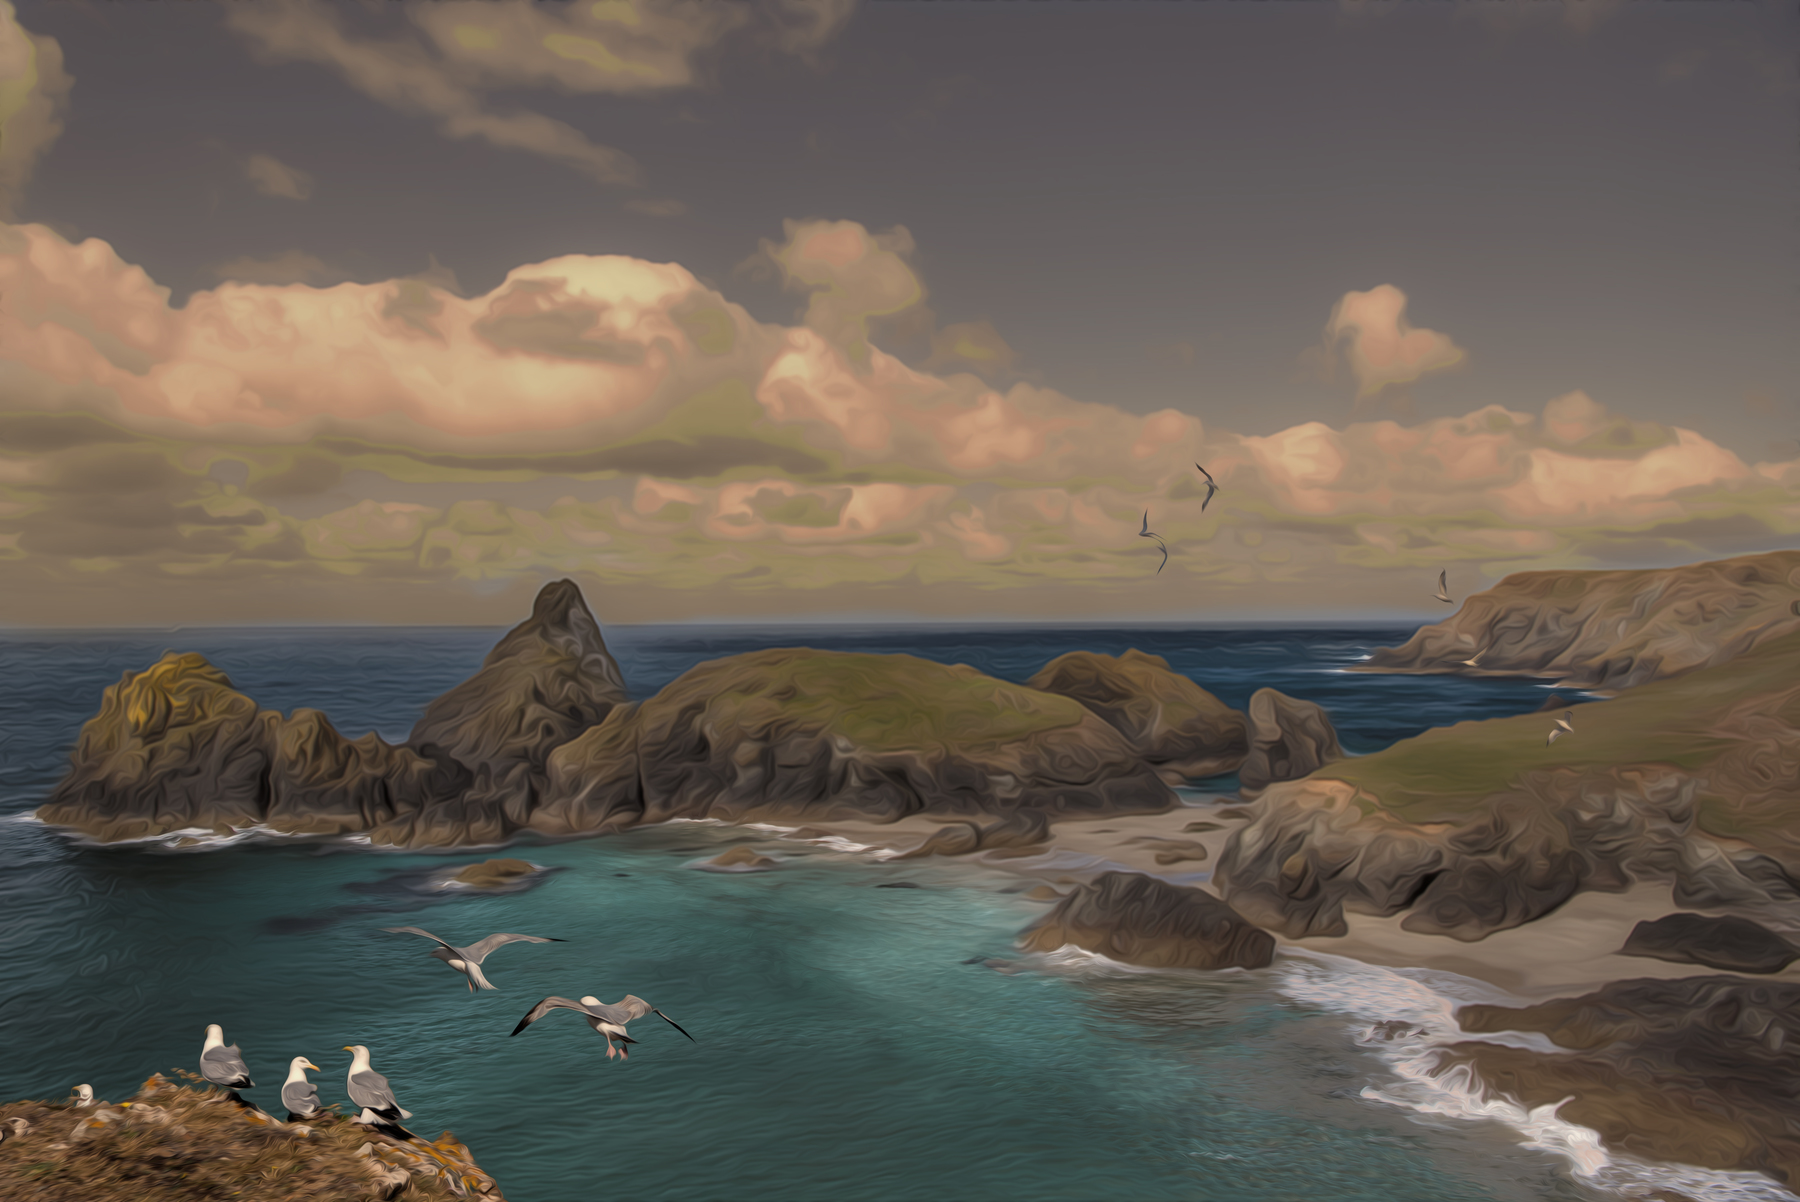 Kynance Cove By Martin Raskovsky - Digitally Manipulated Photography - (Various Sizes & Prices)